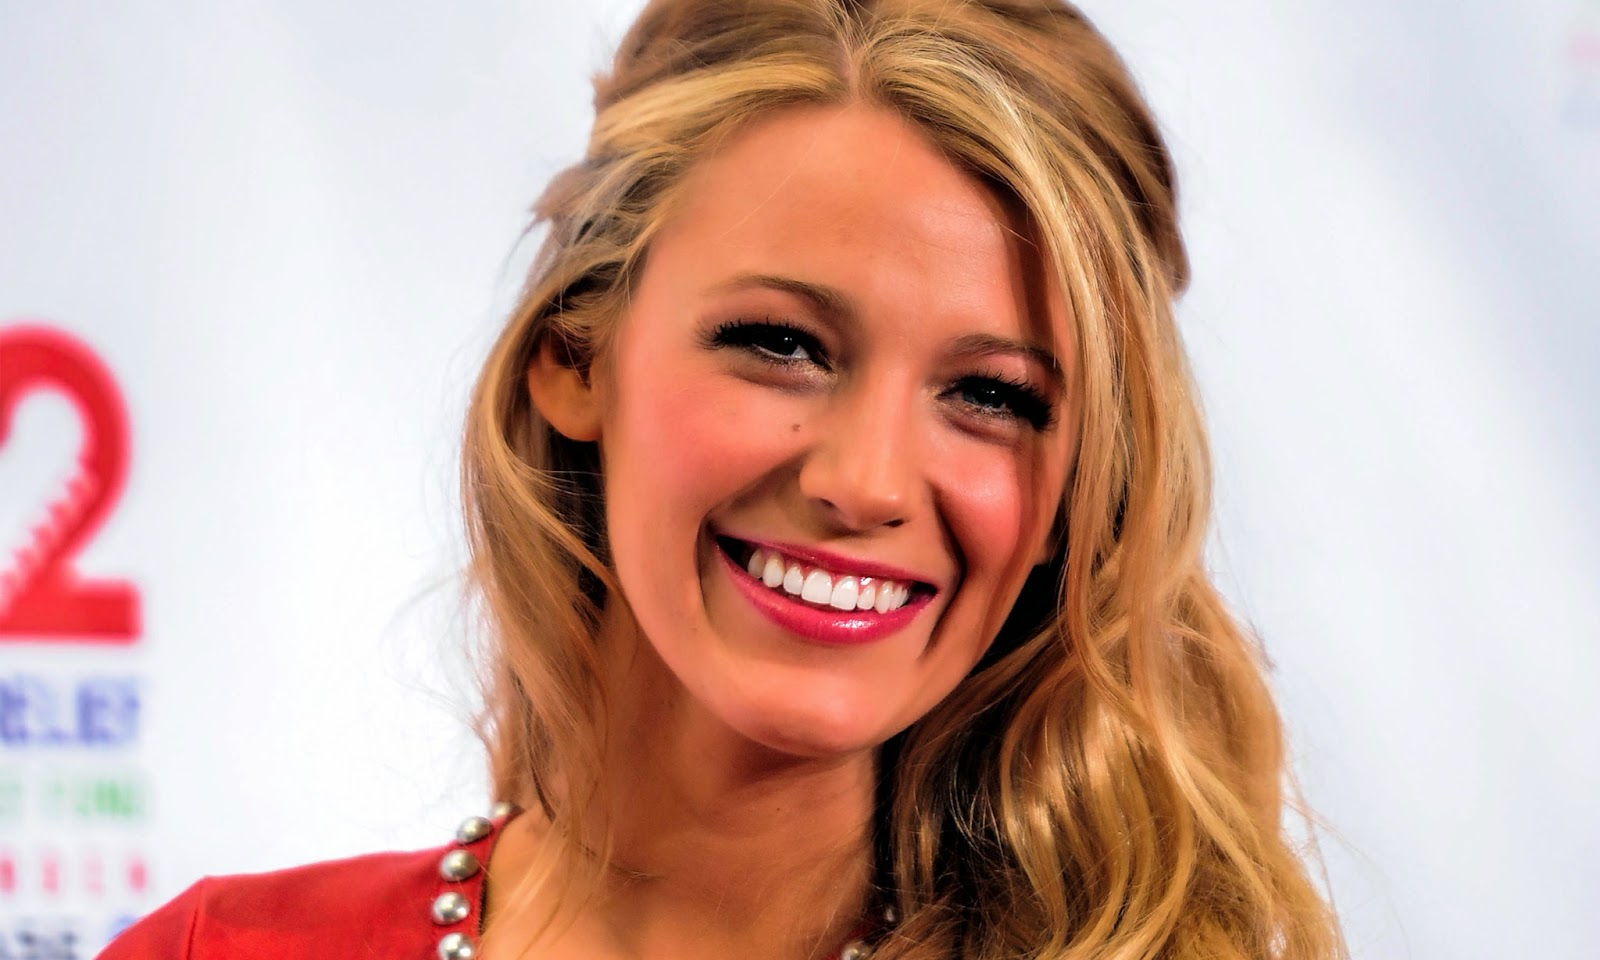 blake lively | hd wallpapers (high definition) | free background